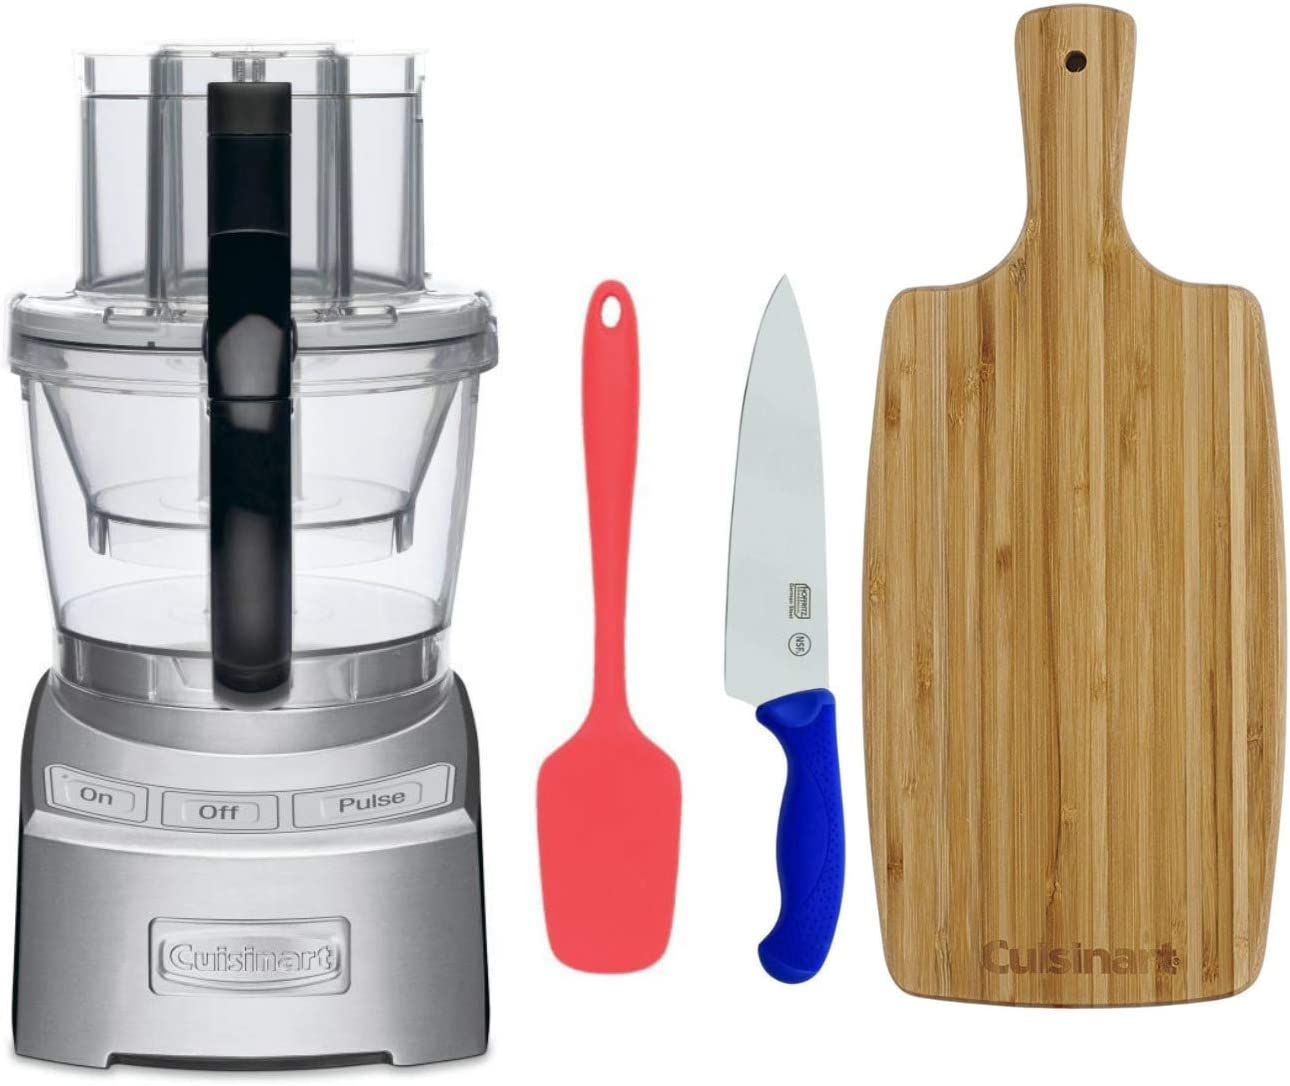 Cuisinart FP12DC Elite Collection 12-Cup Food Processor (Die Cast) w/ Spoon Spatula, Bamboo Cutting Board, & Chef Knife (4 Items)